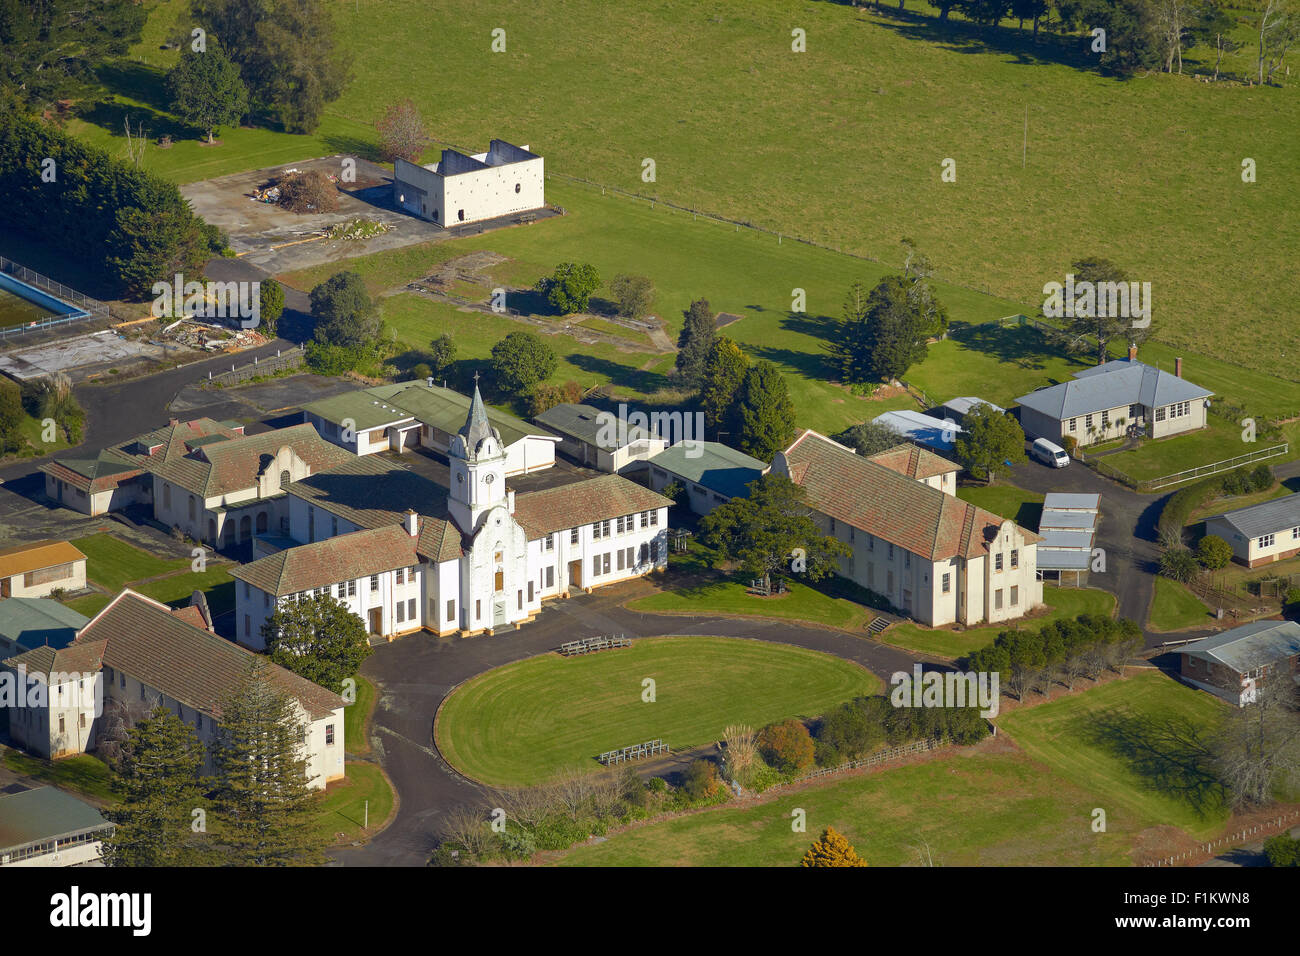 Former St Stephen's School, Bombay, South Auckland, North Island, New Zealand - aerial - Stock Image